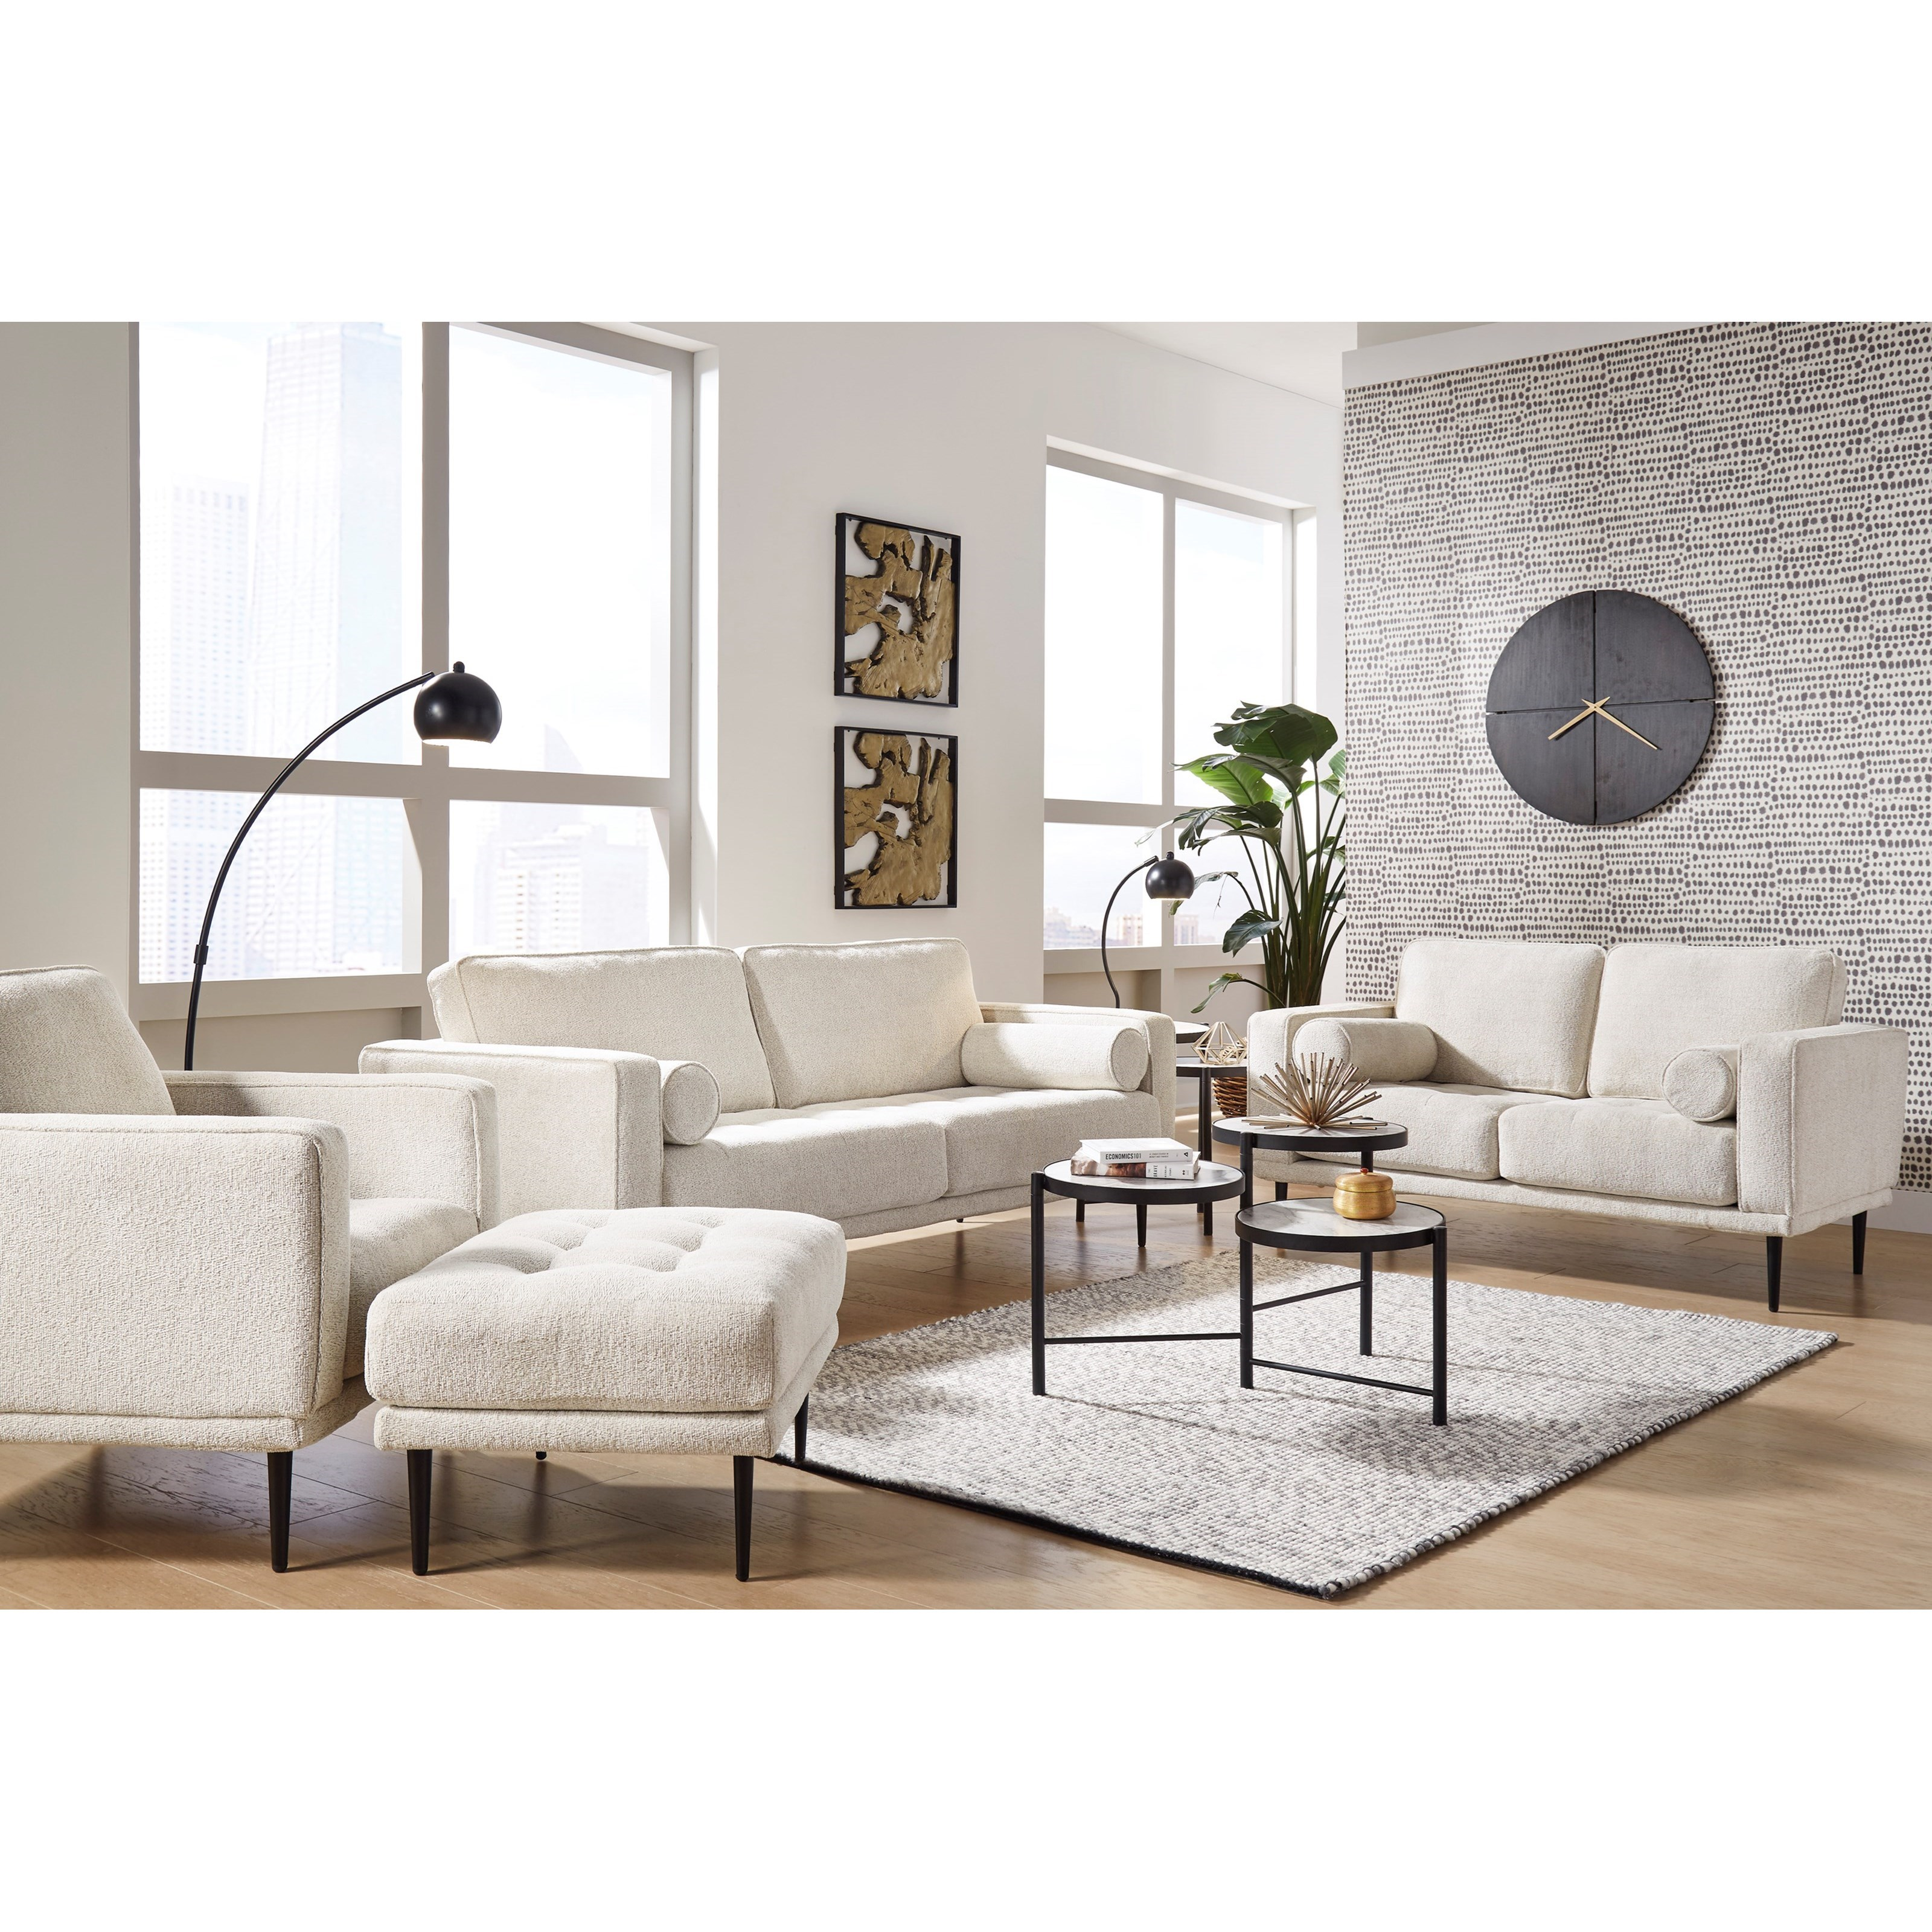 Caladeron Living Room Group by Signature Design by Ashley at Smart Buy Furniture